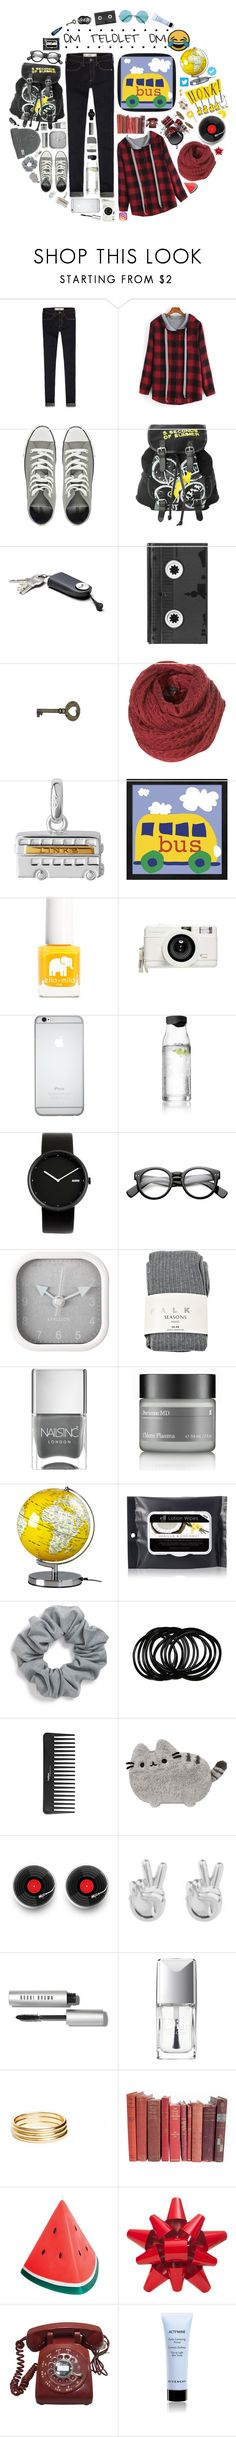 """Hunting : OM TELOLET OM XD"" by karlakasihtajaya ❤ liked on Polyvore featuring Abercrombie & Fitch, Converse, Hot Topic, Luckies, Links of London, Ella+Mila, Lomography, Menu, Alessi and ZeroUV"